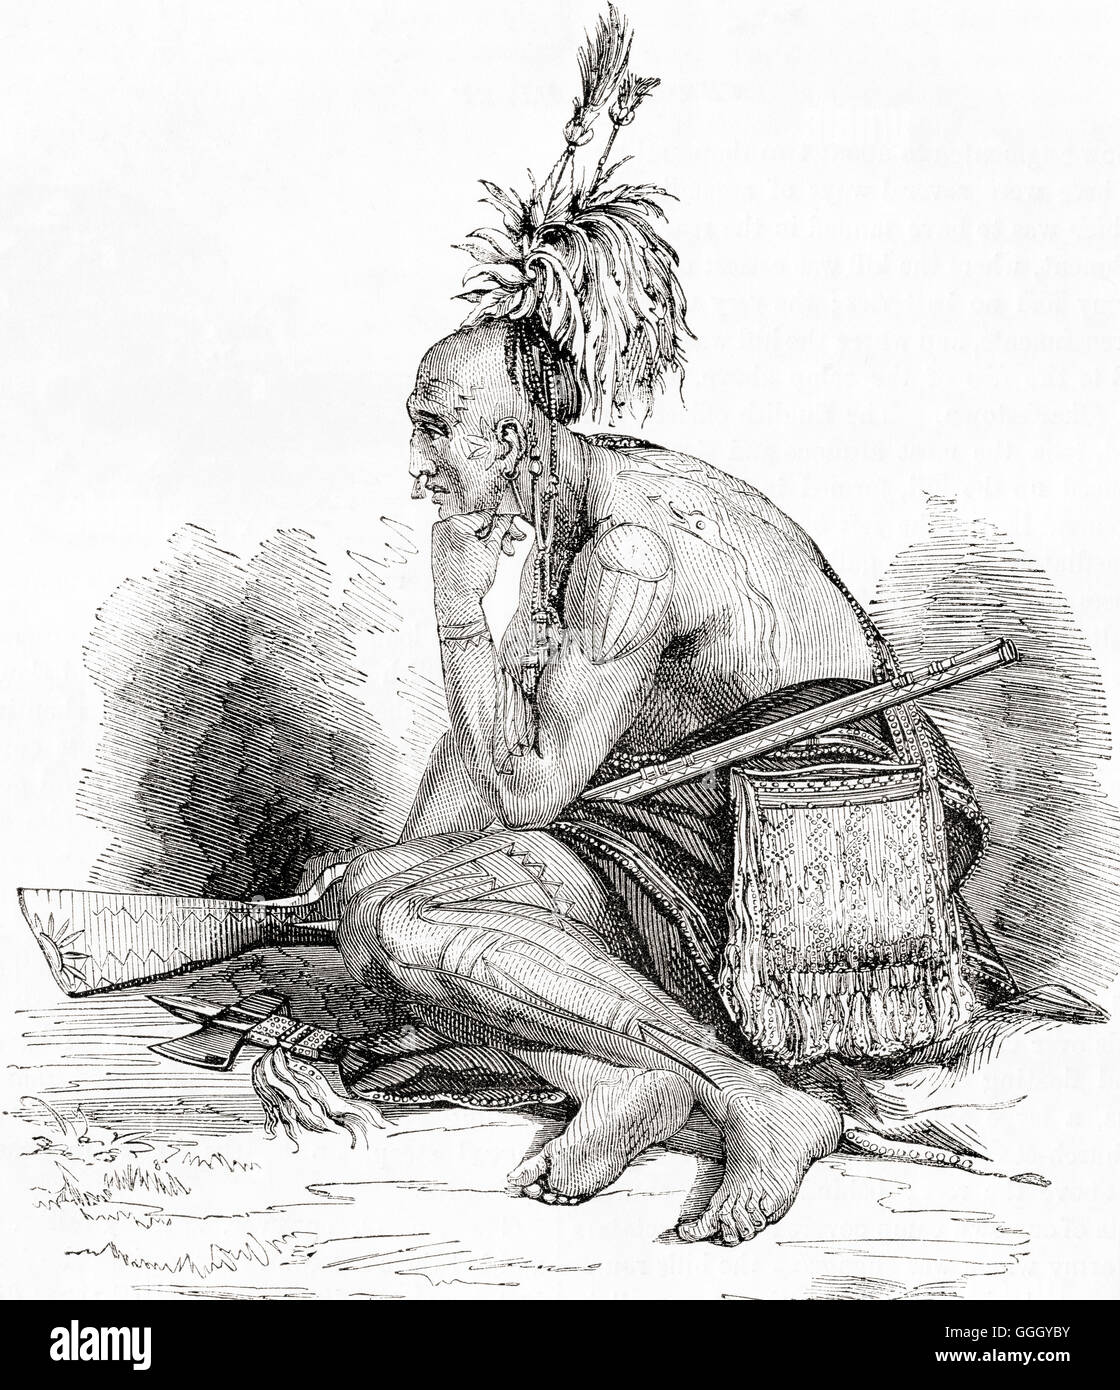 A Canadian Indian in the 18th century. - Stock Image